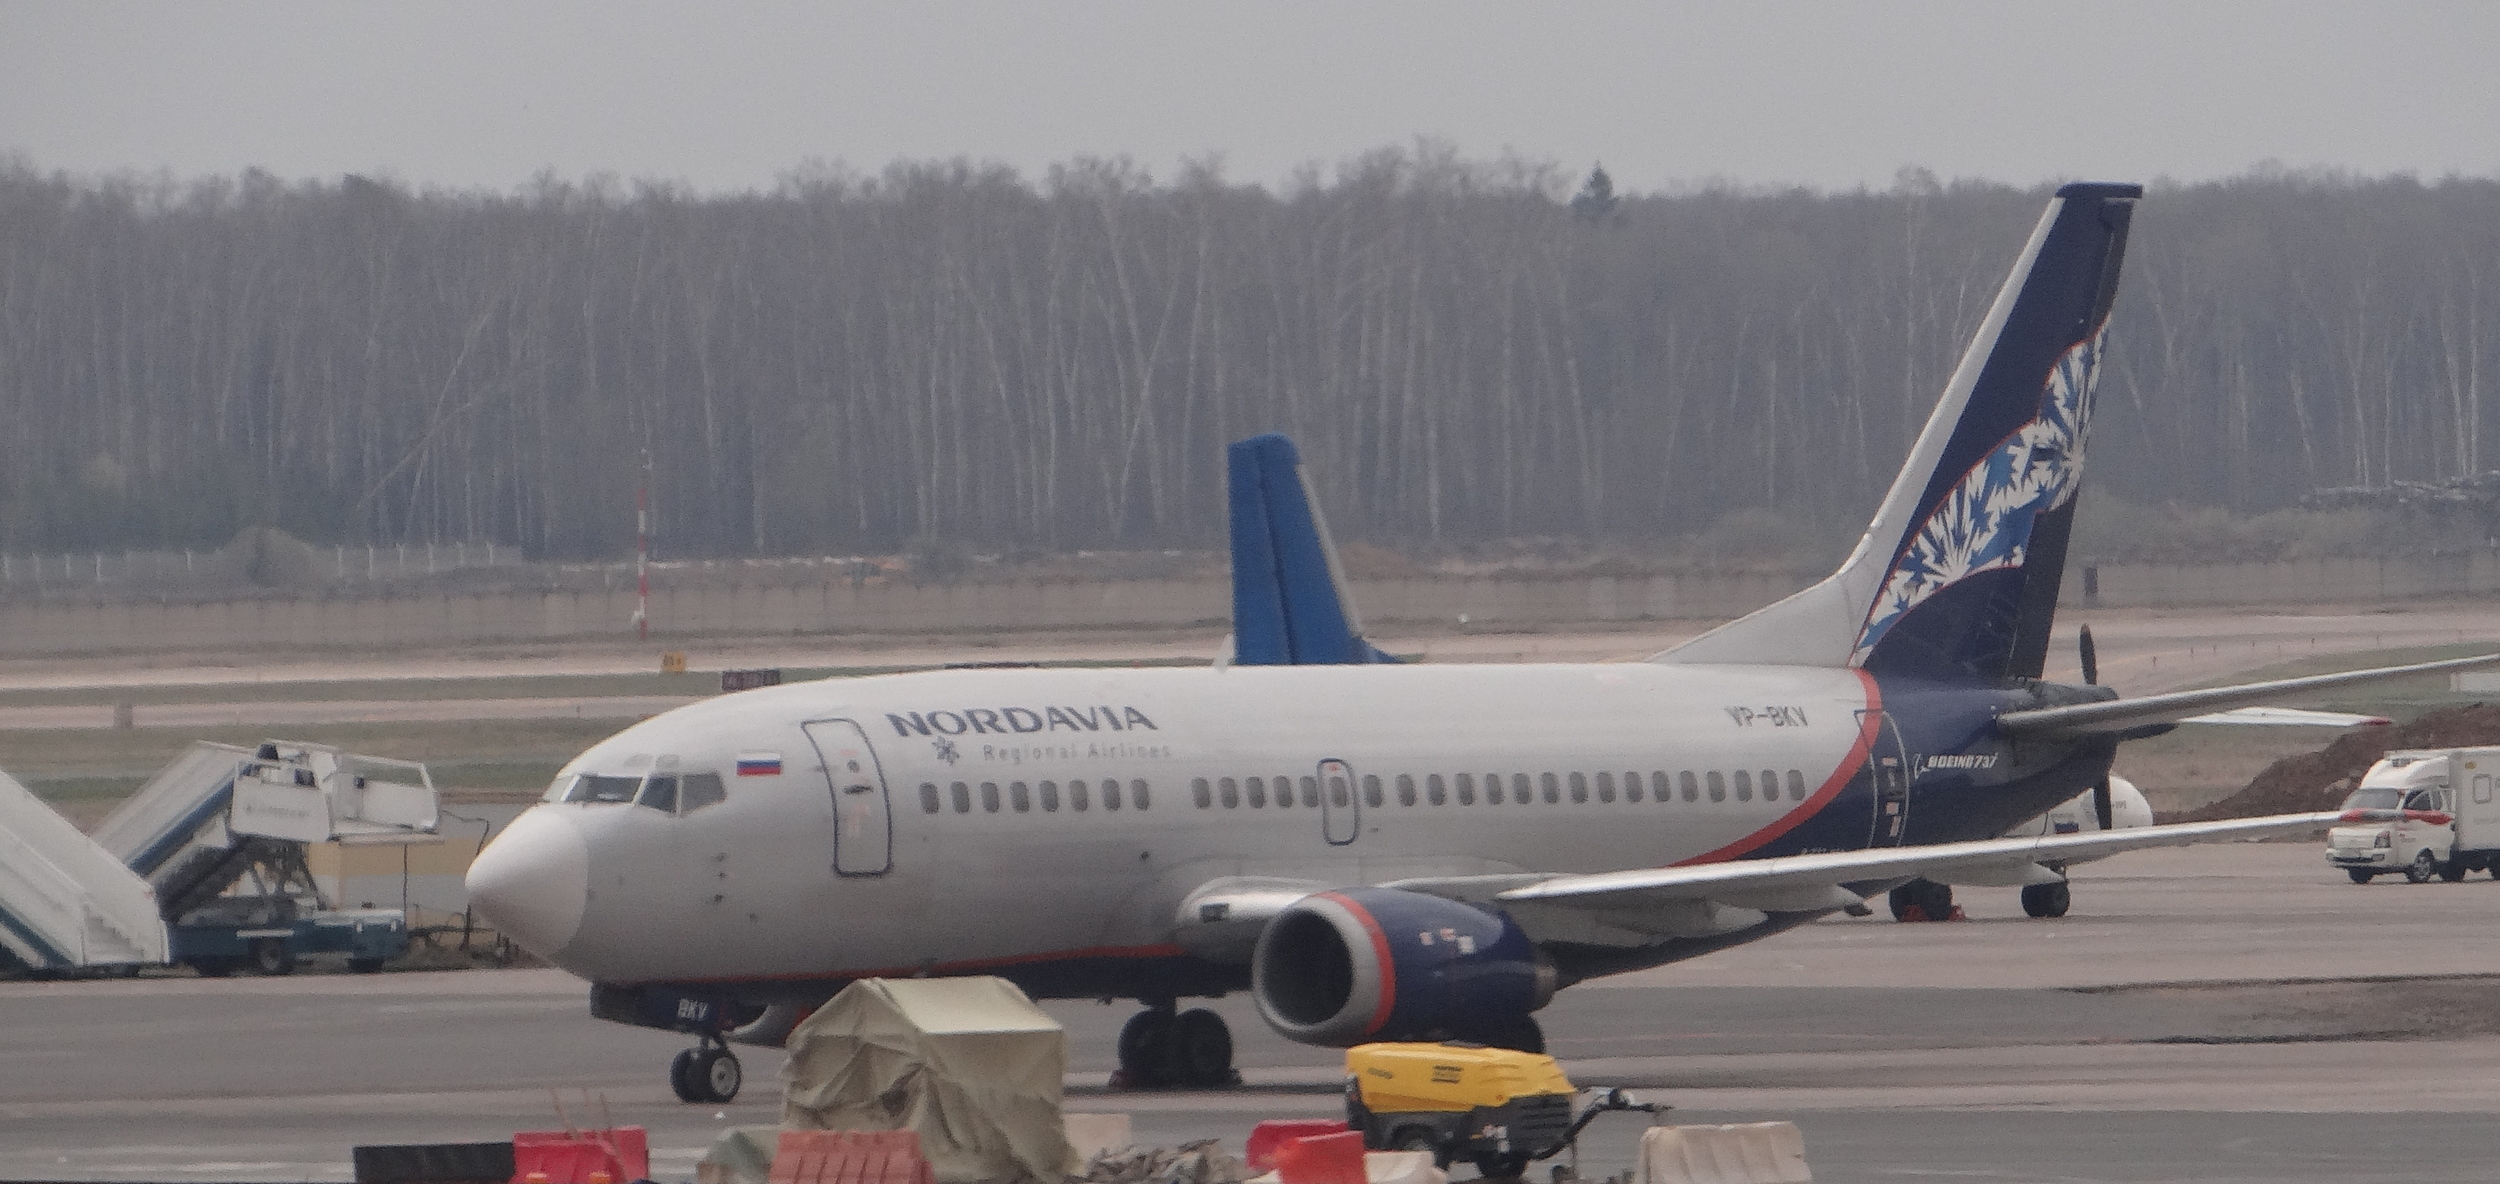 Nordavia currently operates Boeing 737s, but may be switching to MC-21 over the coming years